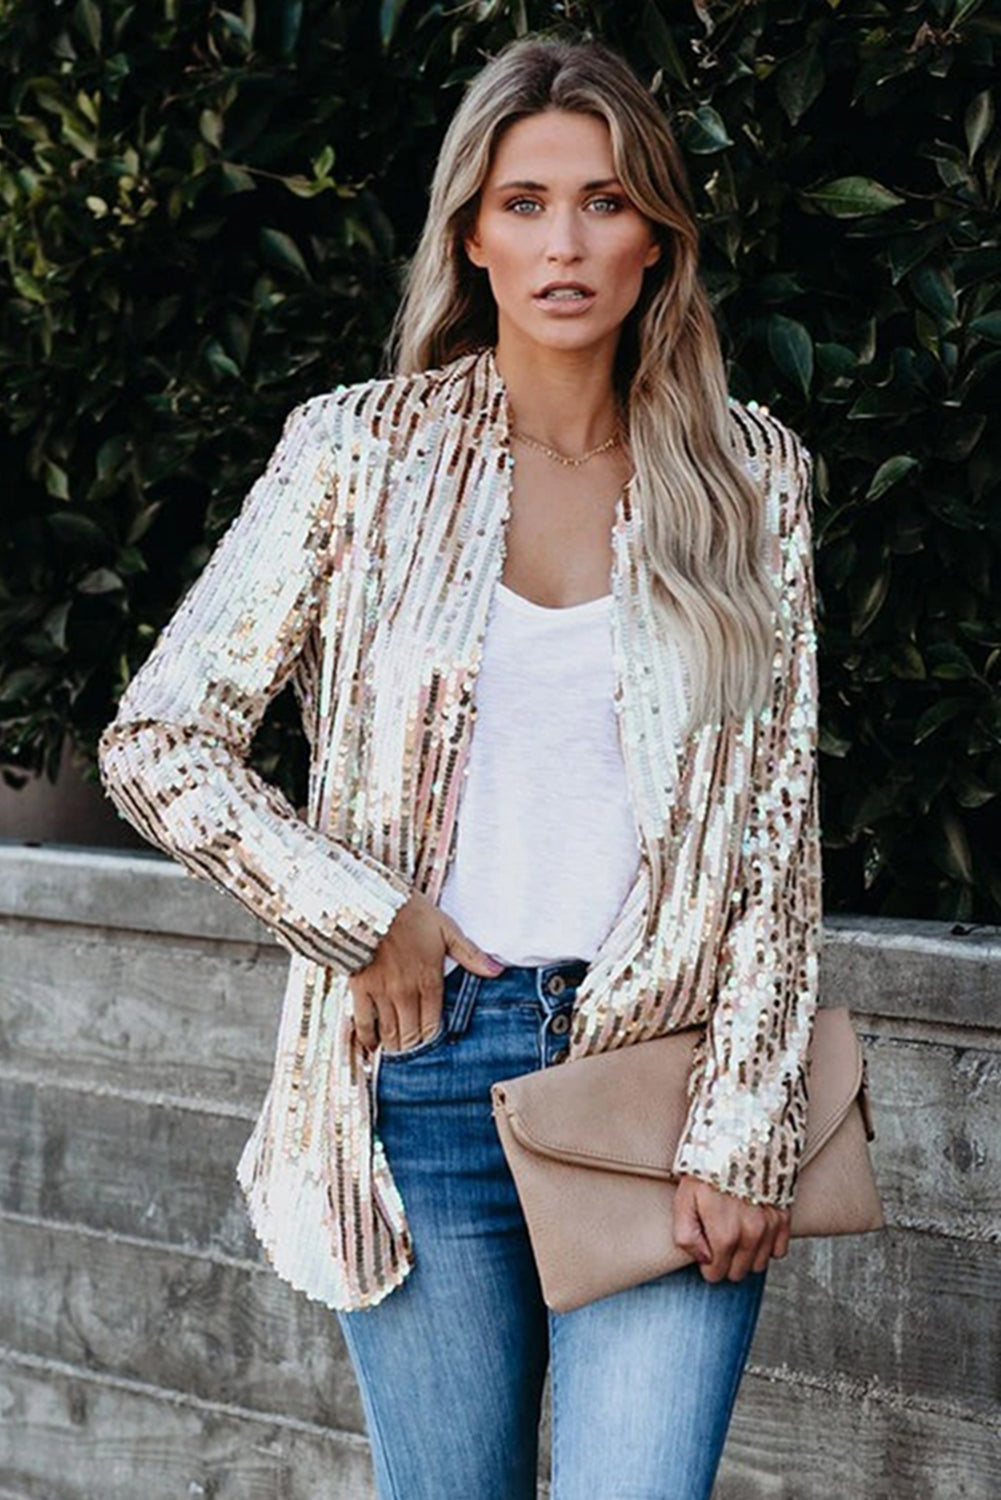 Bling Bling Sequin Blazer Suits & Coats Discount Designer Fashion Clothes Shoes Bags Women Men Kids Children Black Owned Business